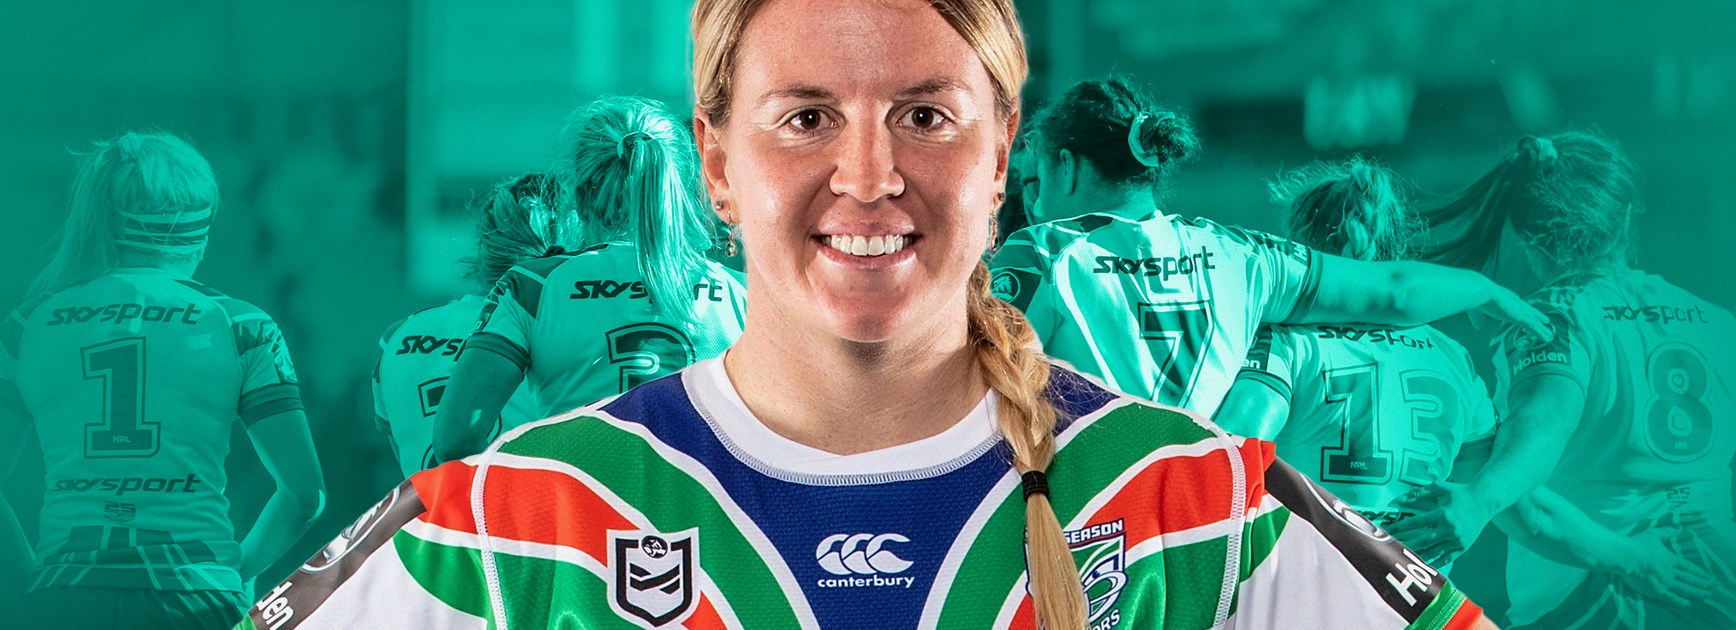 Hale and hearty: Warriors won't back down from NRLW challenge